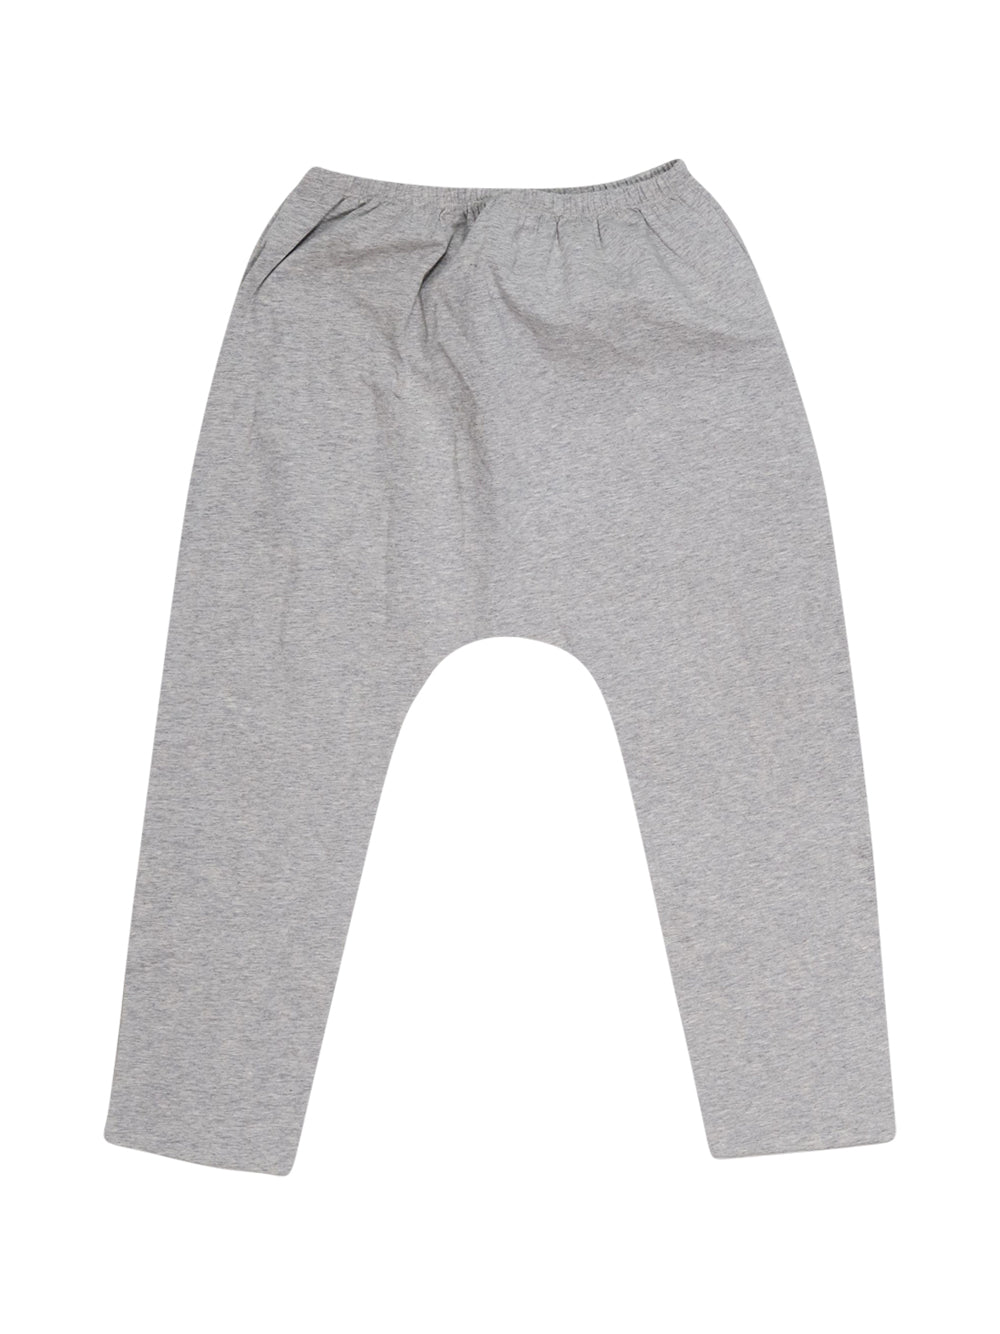 Front photo of Unworn Essence Grey Girl's sport trousers - size 7-8 yrs